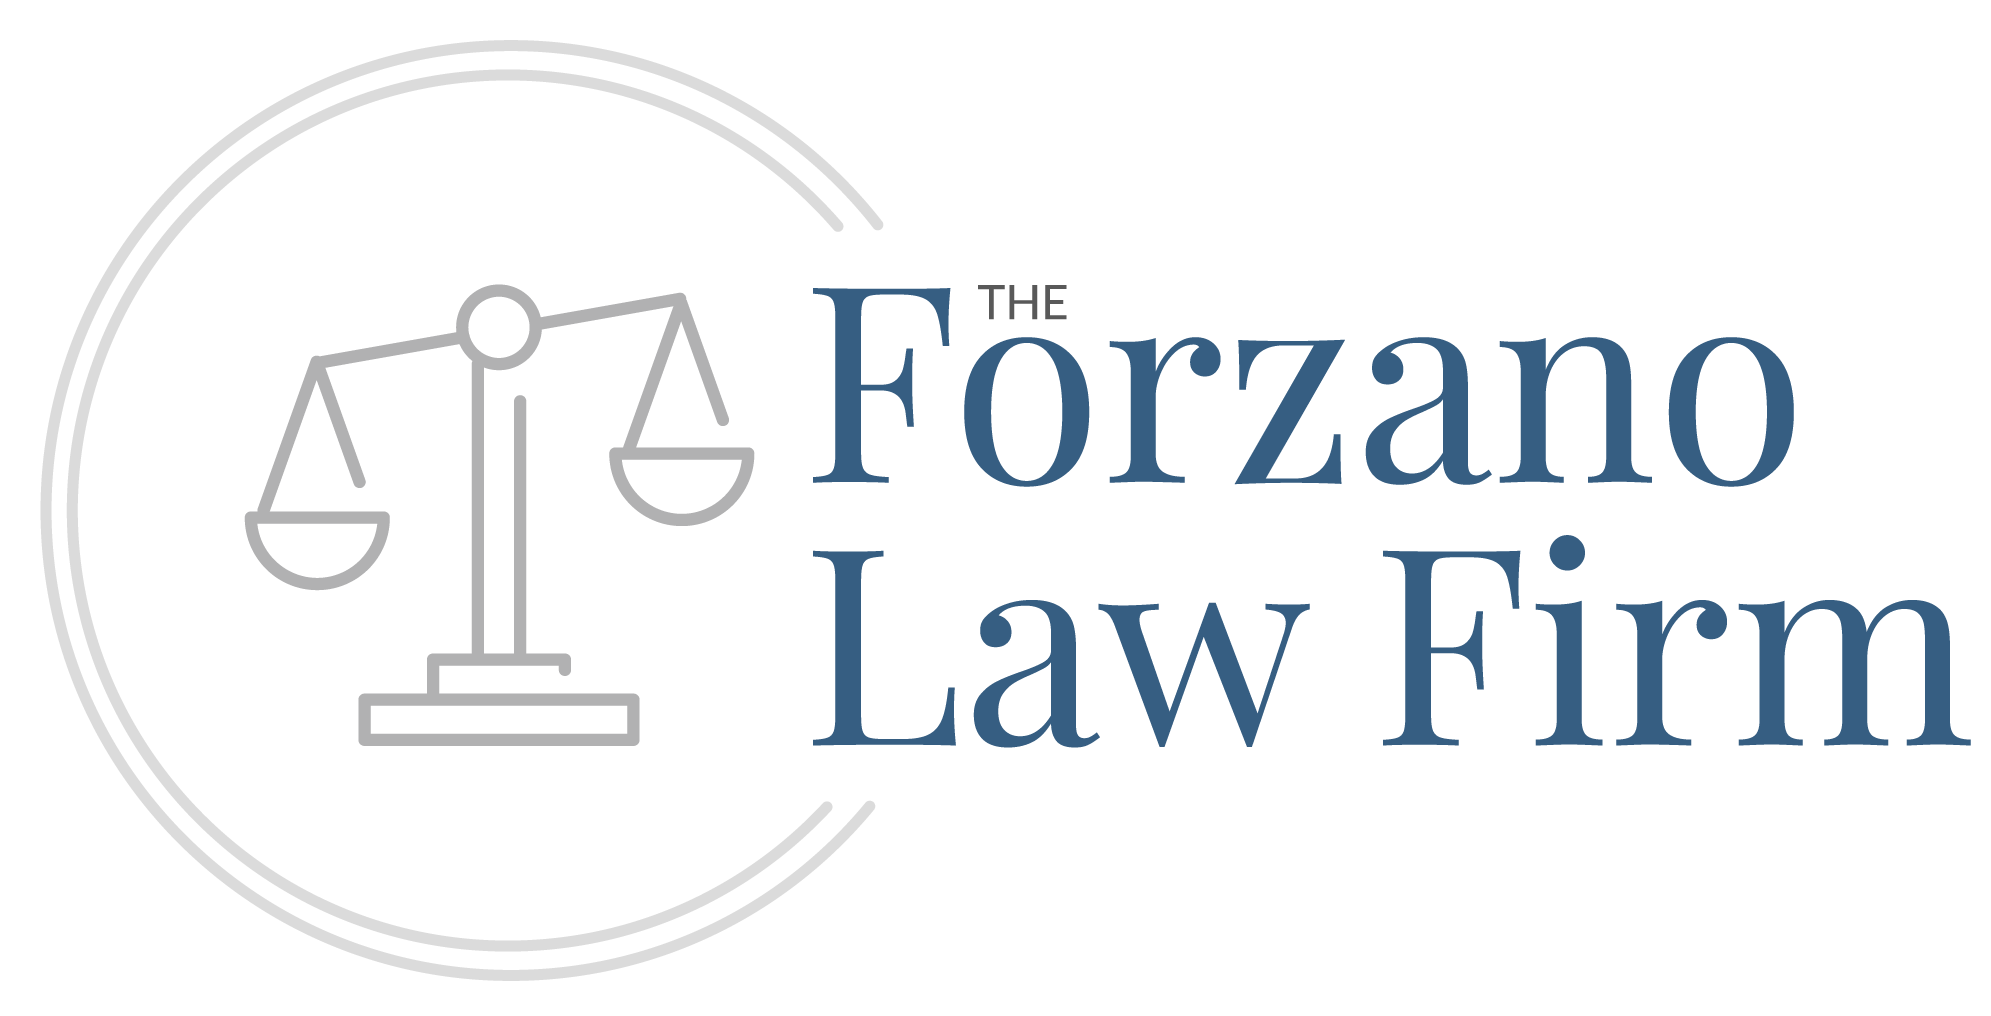 The Forzano Law Firm Logo